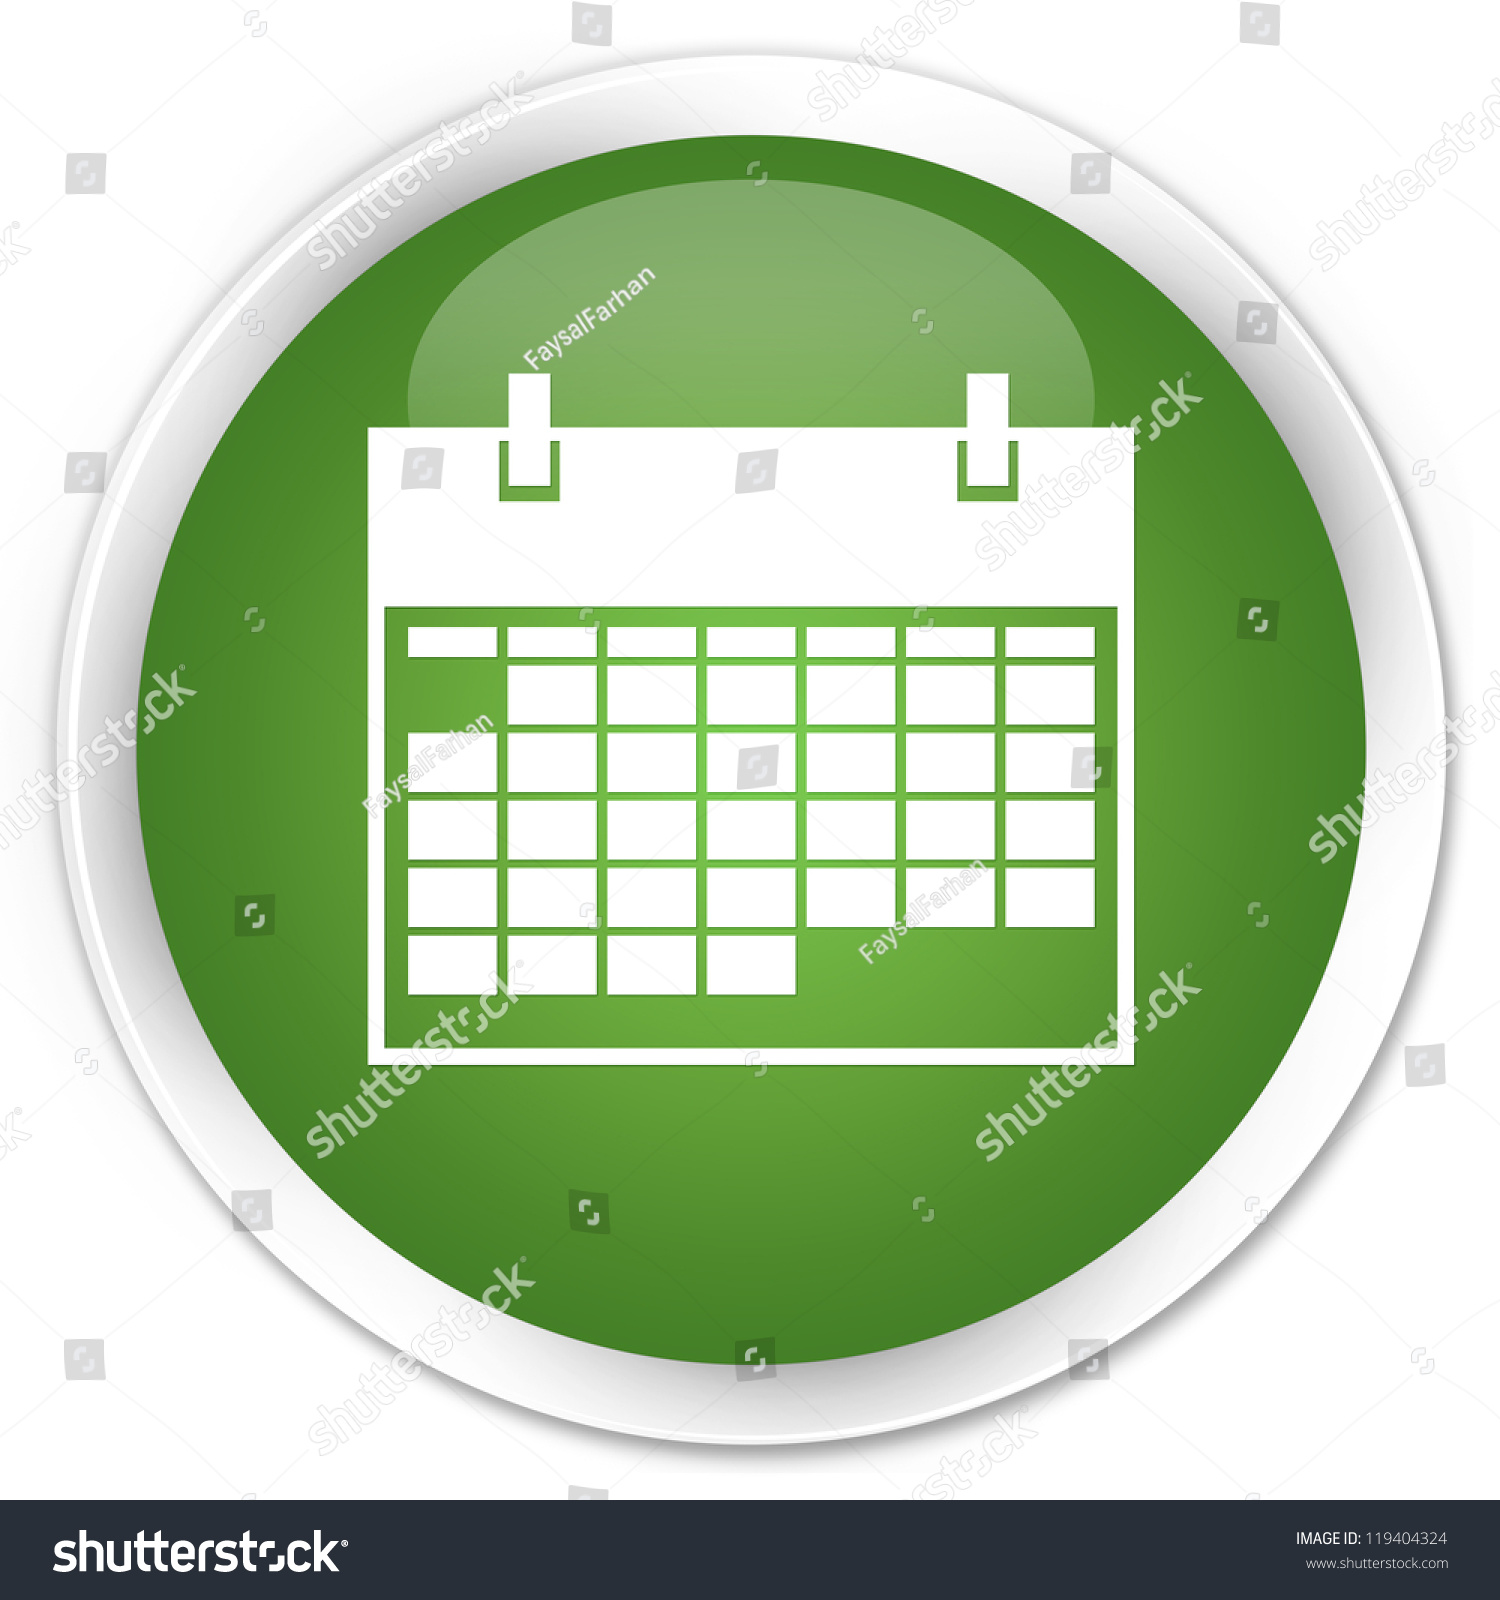 Blank Calendar Icon Green : Calendar icon green button stock illustration